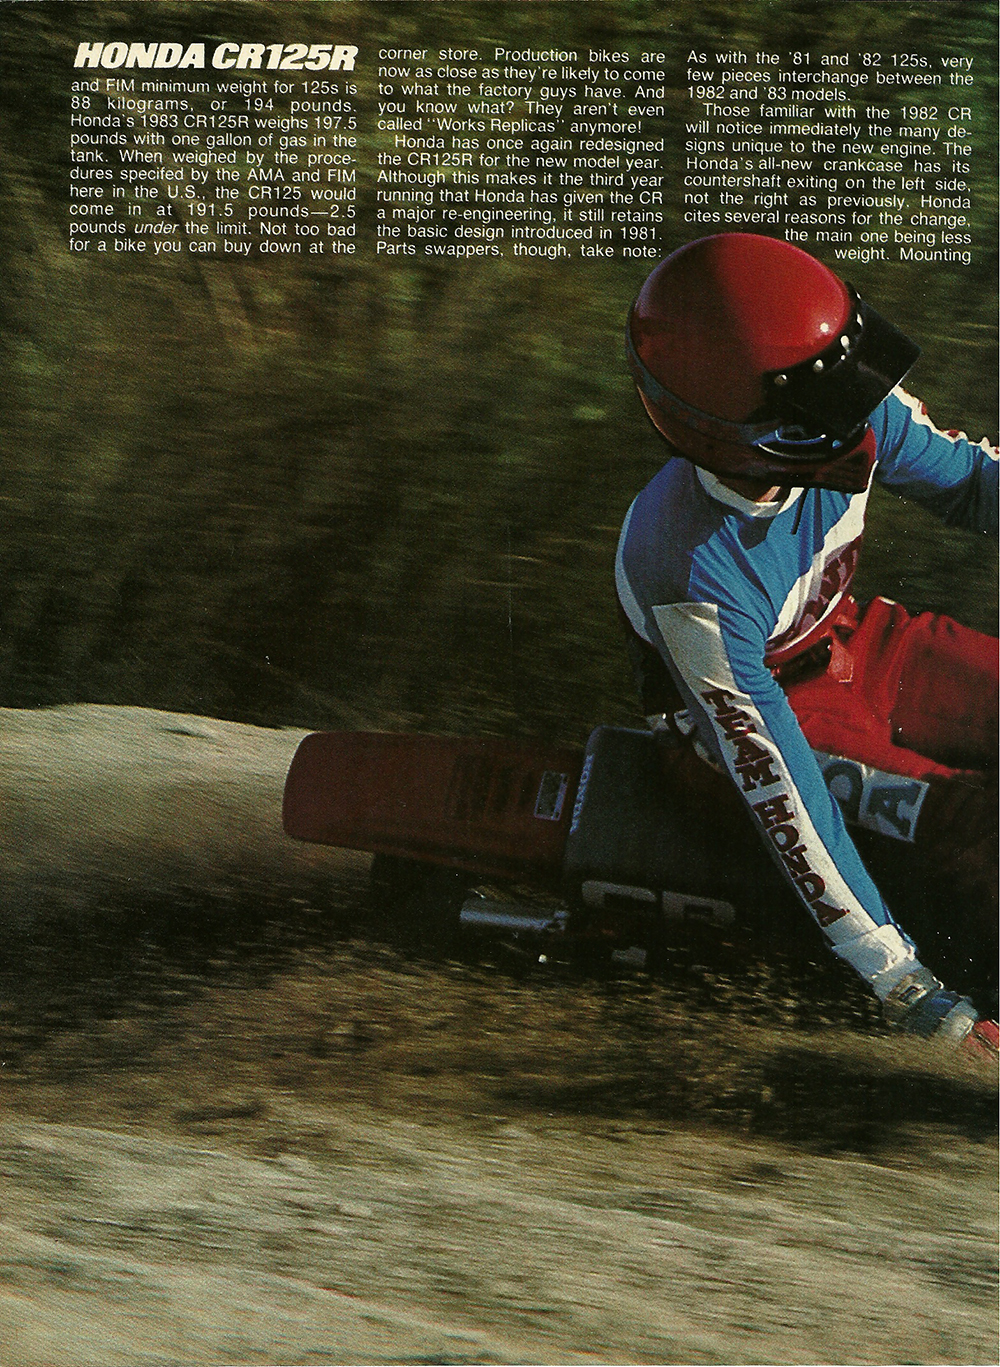 1983 Honda CR125R road test 3.jpg